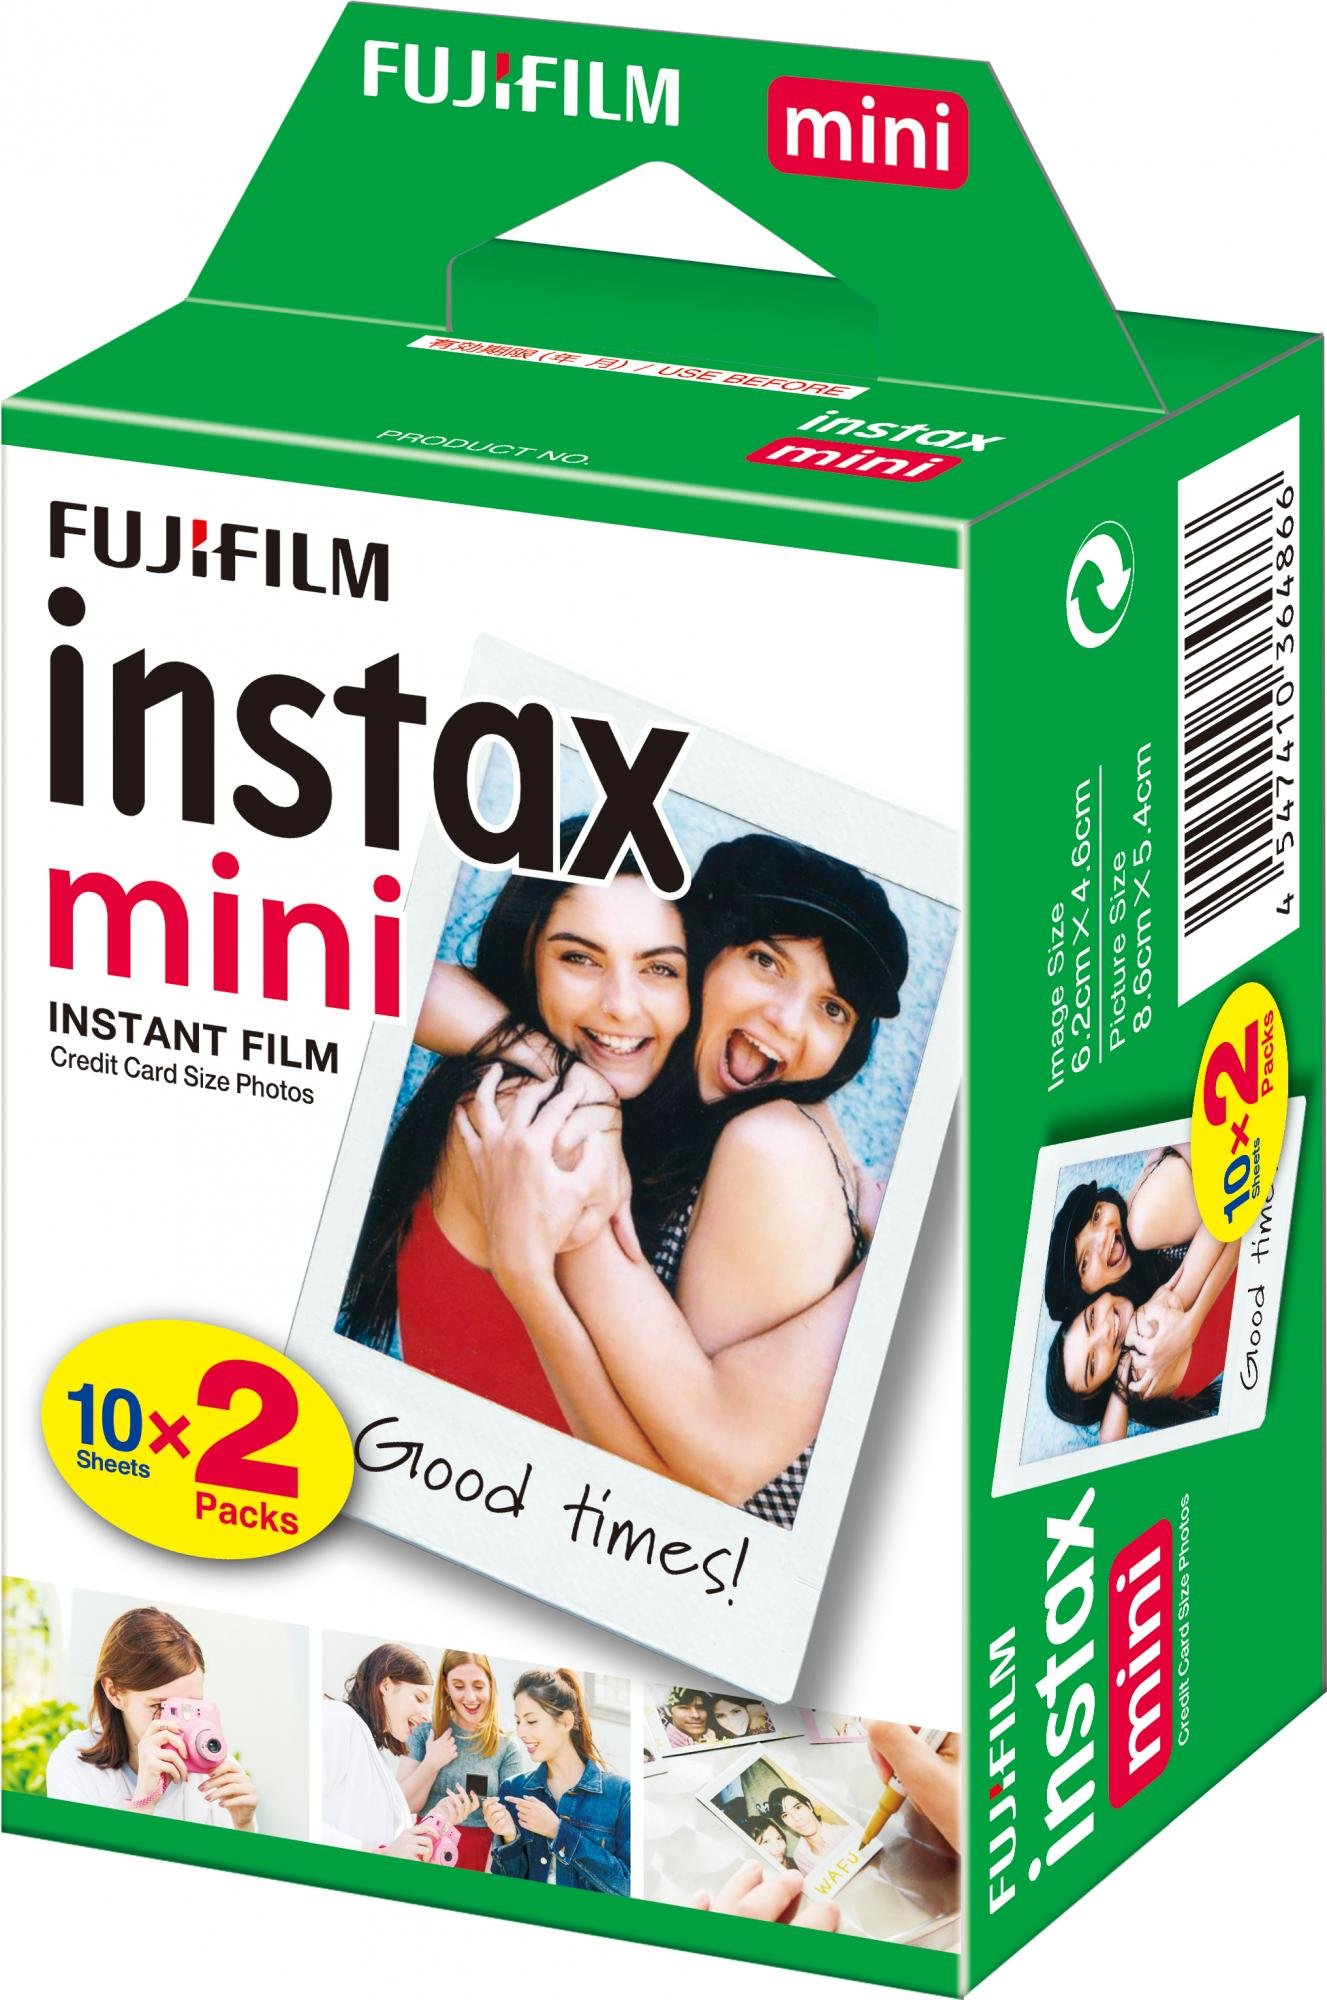 INSTAX mini film 2x10 glossy